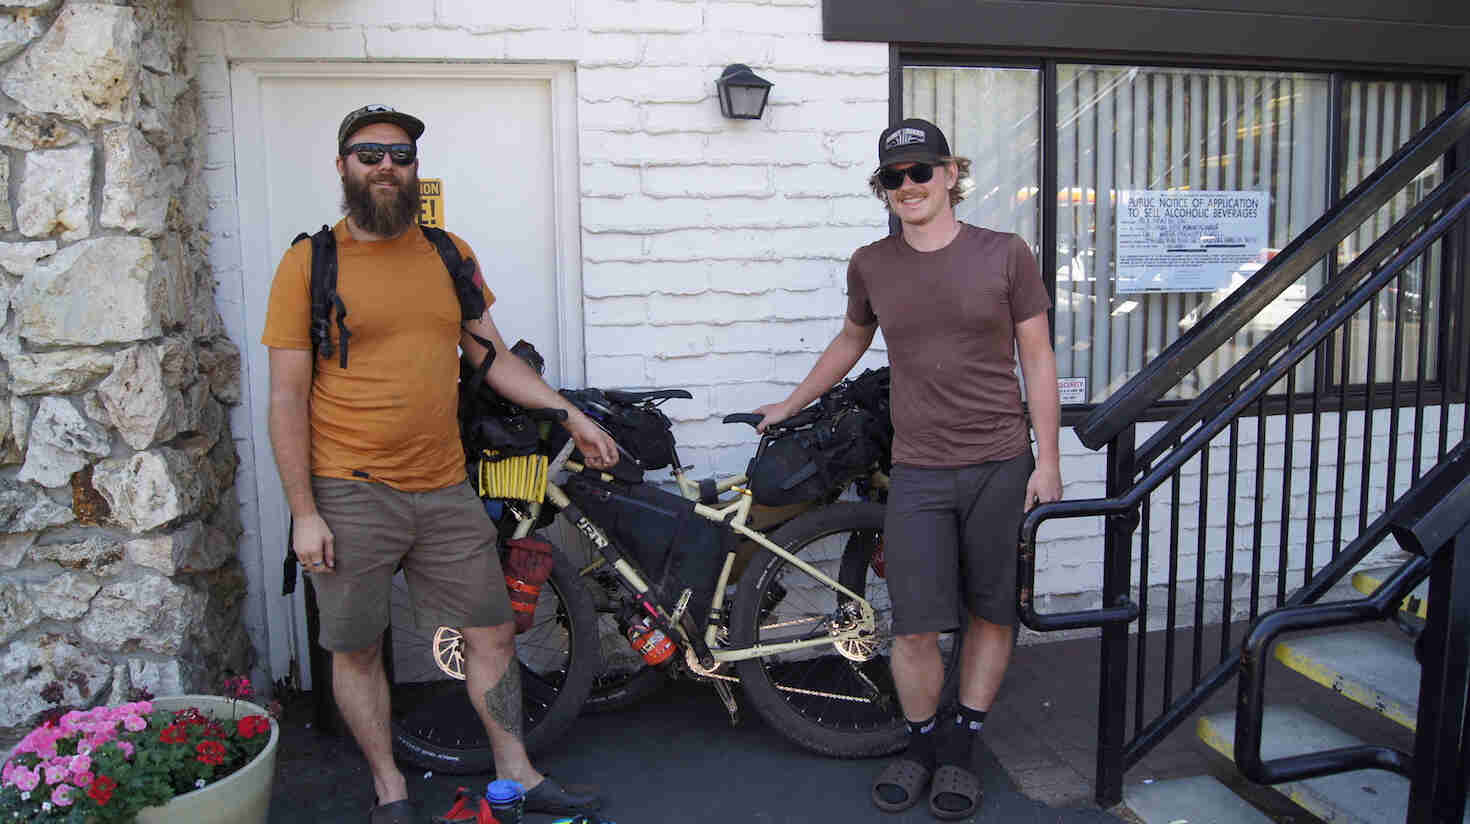 Front view of two cyclists standing with Surly fat bikes, in front of a motel room